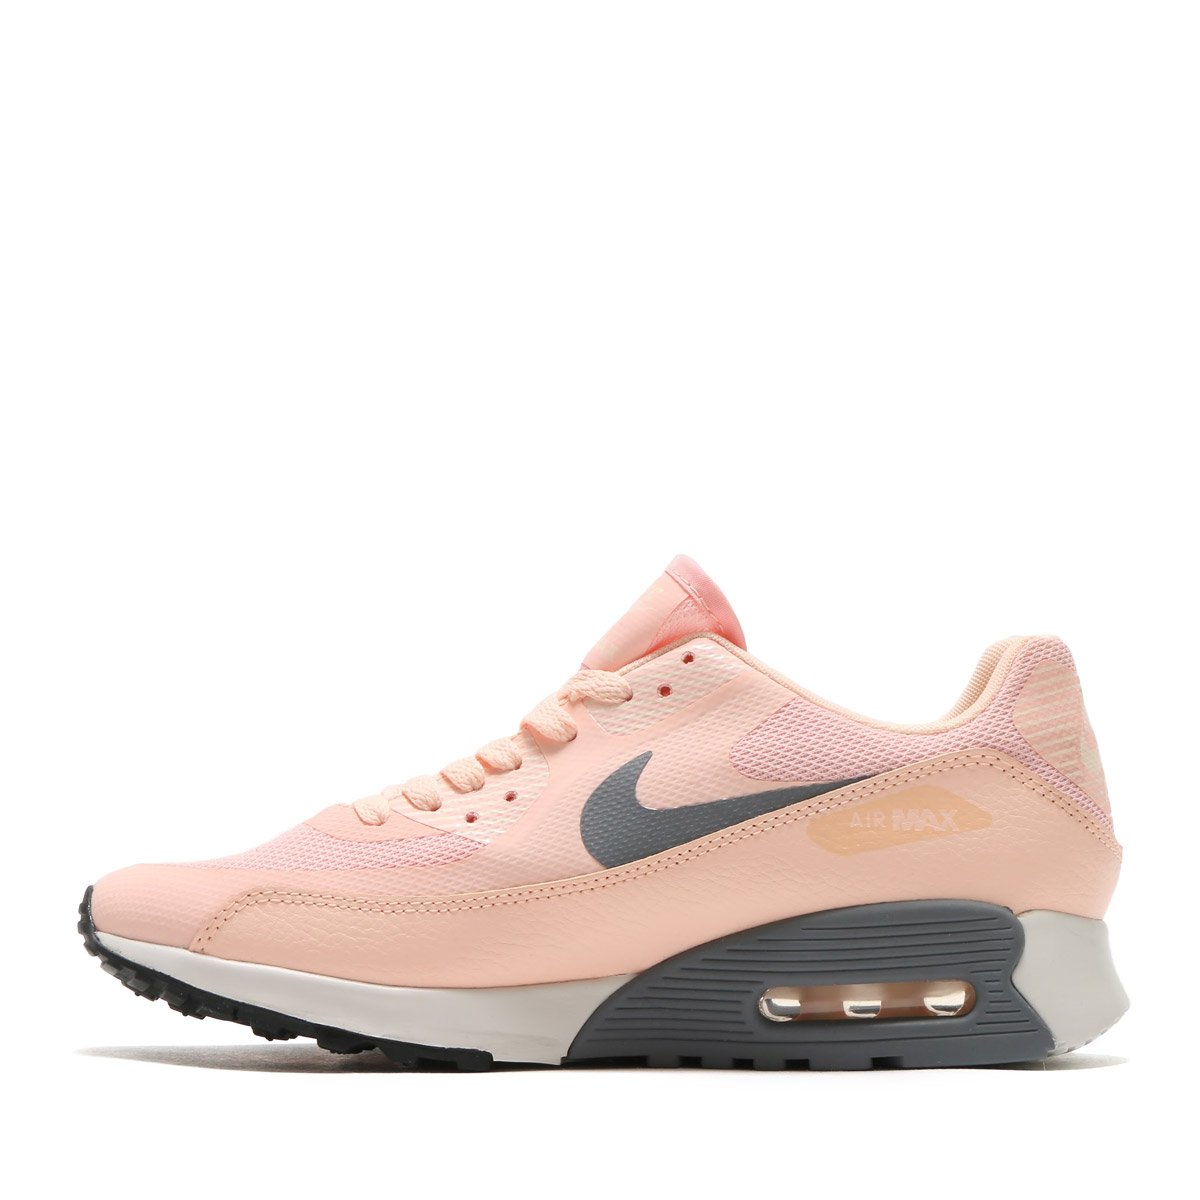 NIKE WMNS AIR MAX 90 ULTRA 2.0 (Nike women Air Max 90 ultra 2.0) SUNSET TINT/COOL GREY-SUMMIT WHITE-BLACK 17SU-I